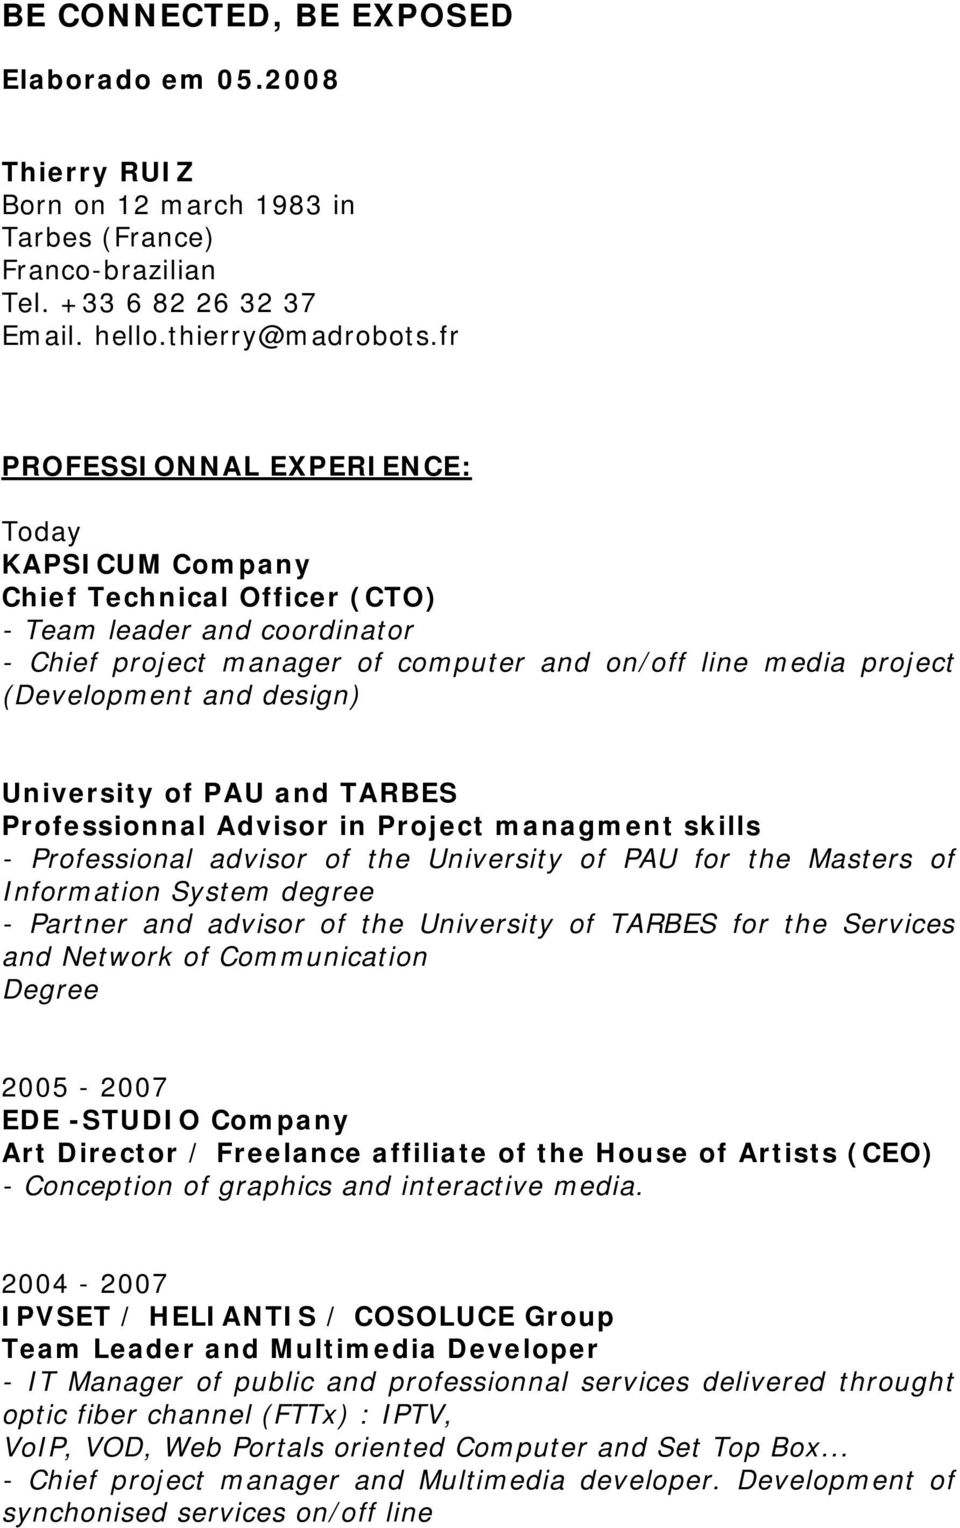 design) University of PAU and TARBES Professionnal Advisor in Project managment skills - Professional advisor of the University of PAU for the Masters of Information System degree - Partner and